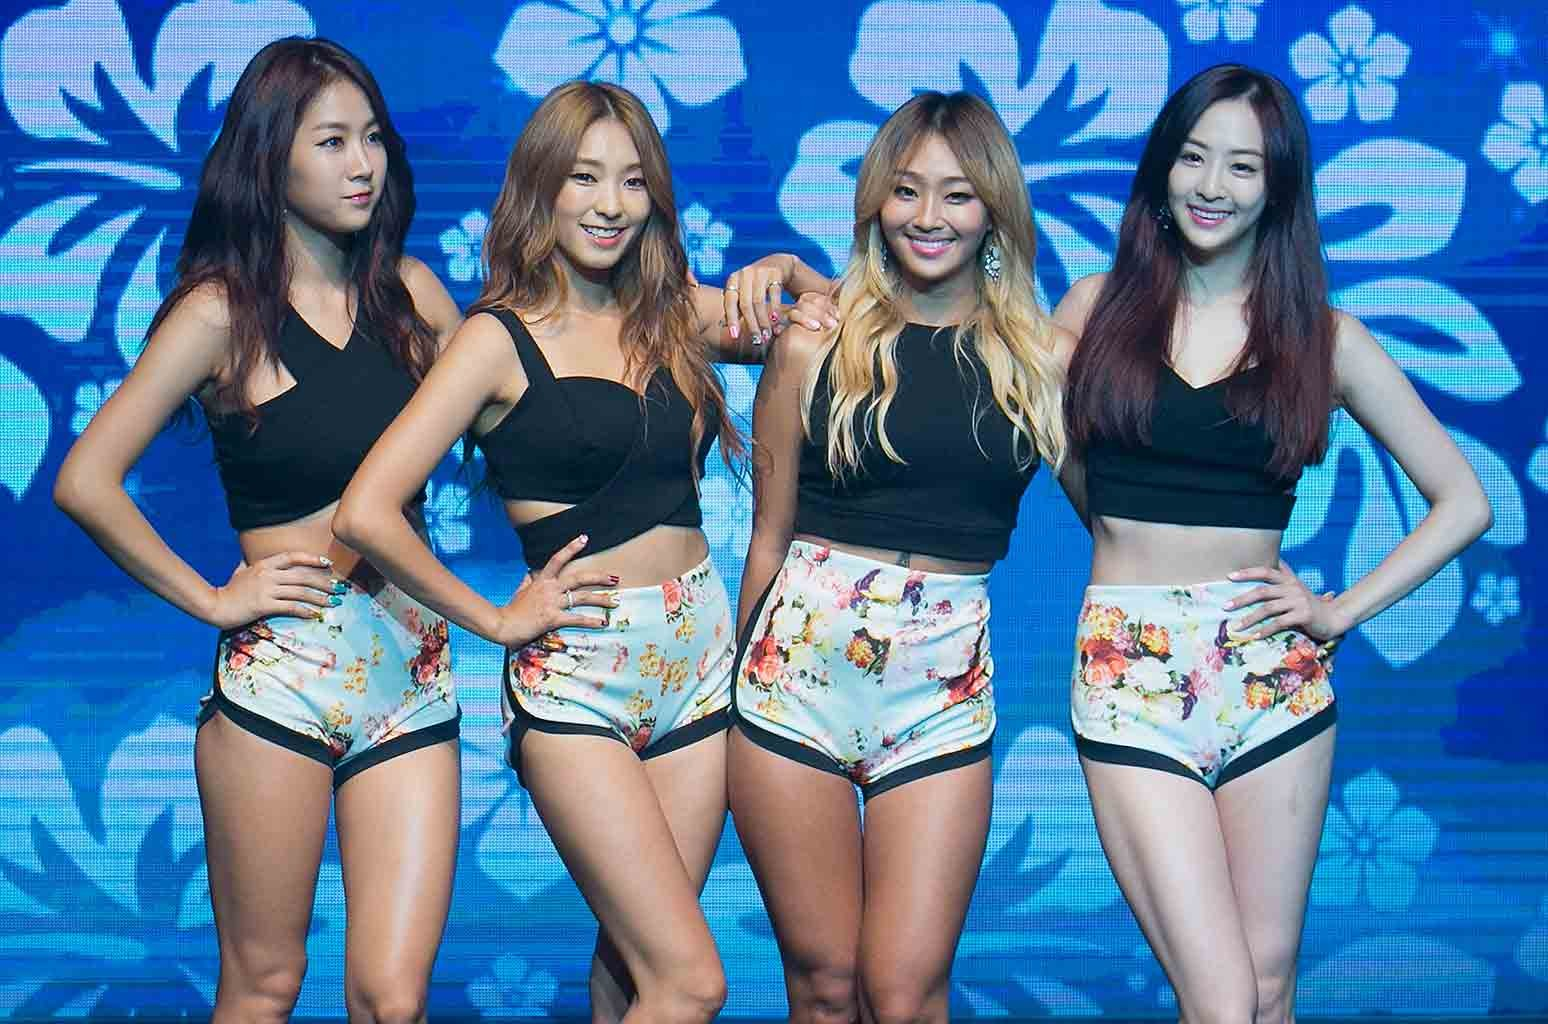 Soyou, Bora, Hyolyn (Hyorin) and Dasom of South Korean girl group SISTAR perform onstage during their new album 'Touch and Move' showcase at Ilchi Art Hall on July 21, 2014 in Seoul, South Korea.